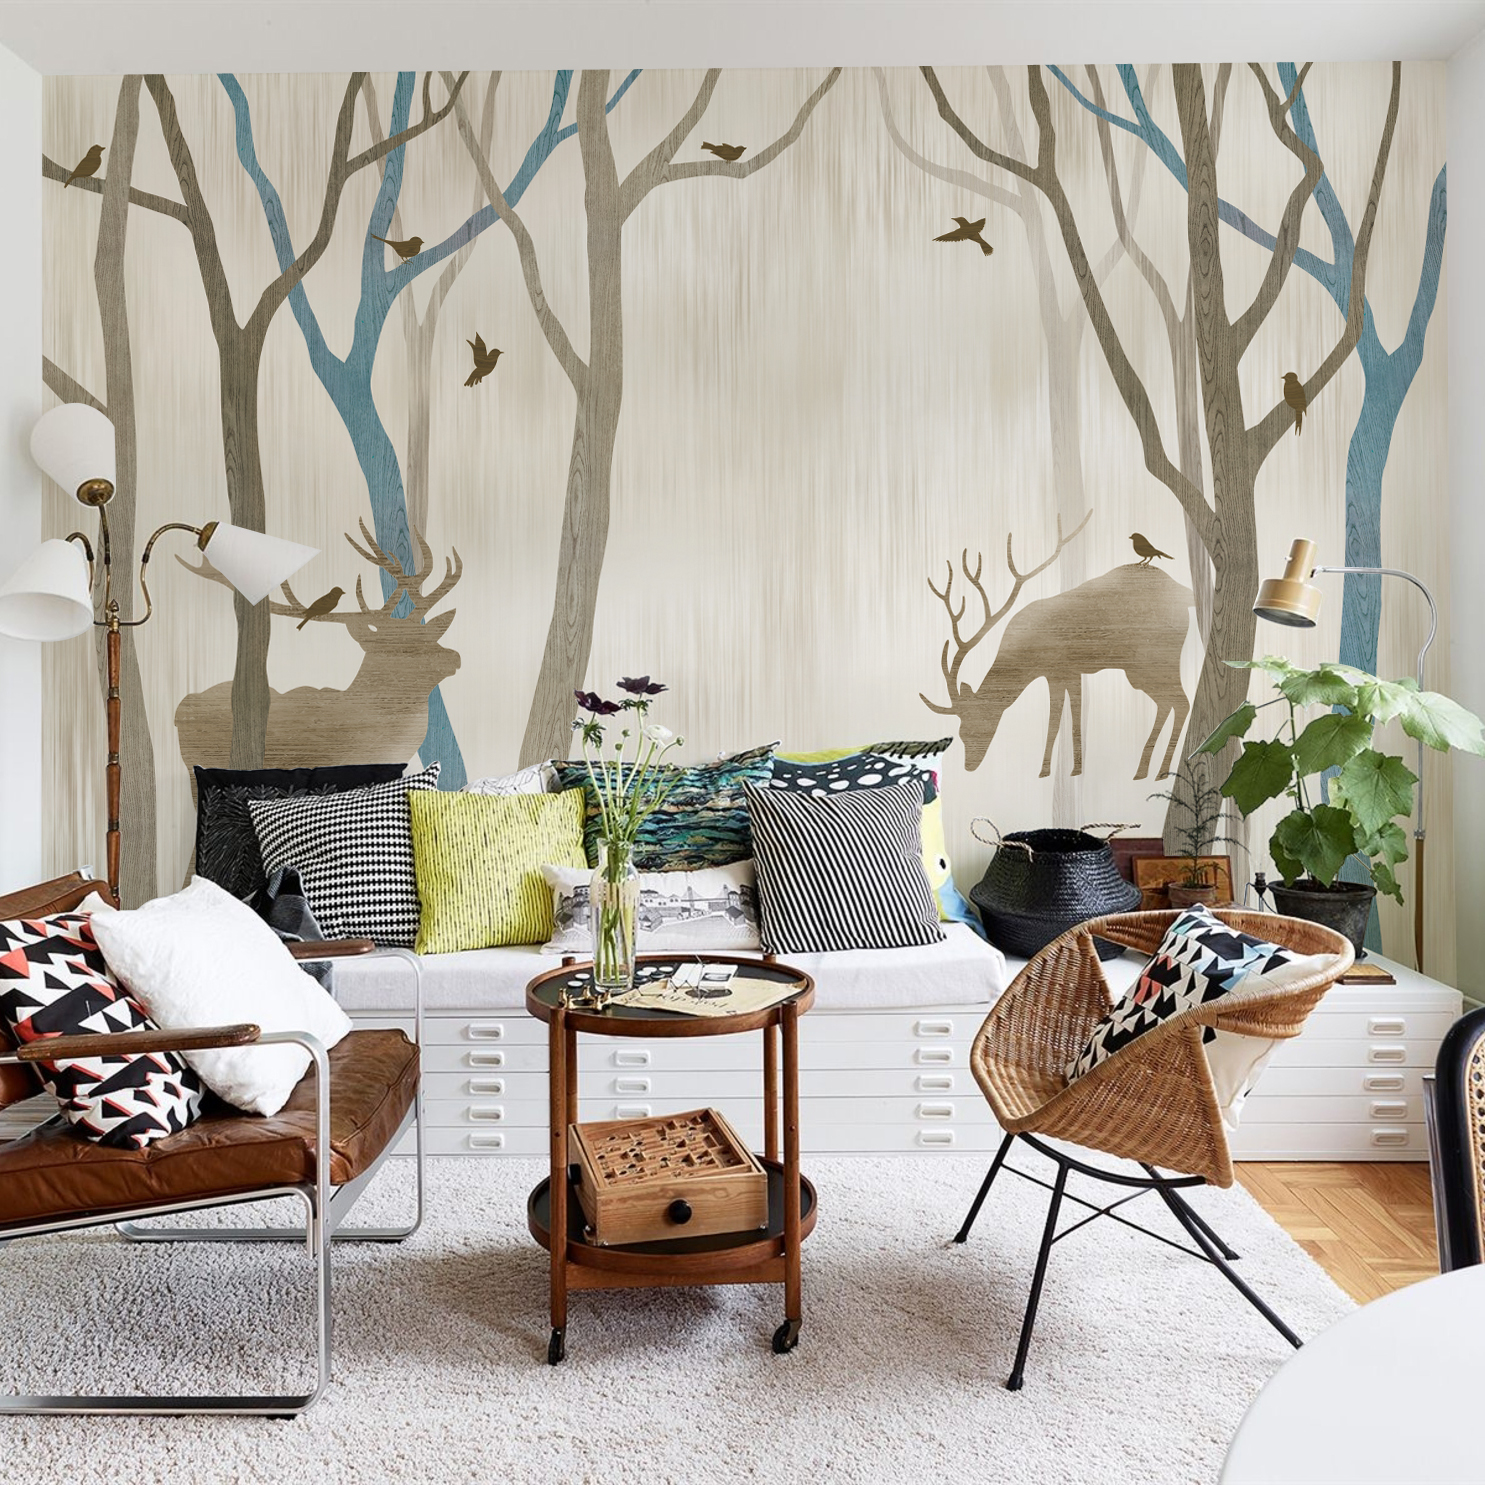 Get Quotations Edgar Mito Large Mural Nordic Style Bedroom Room Wallpaper Tv Background Painting Forest